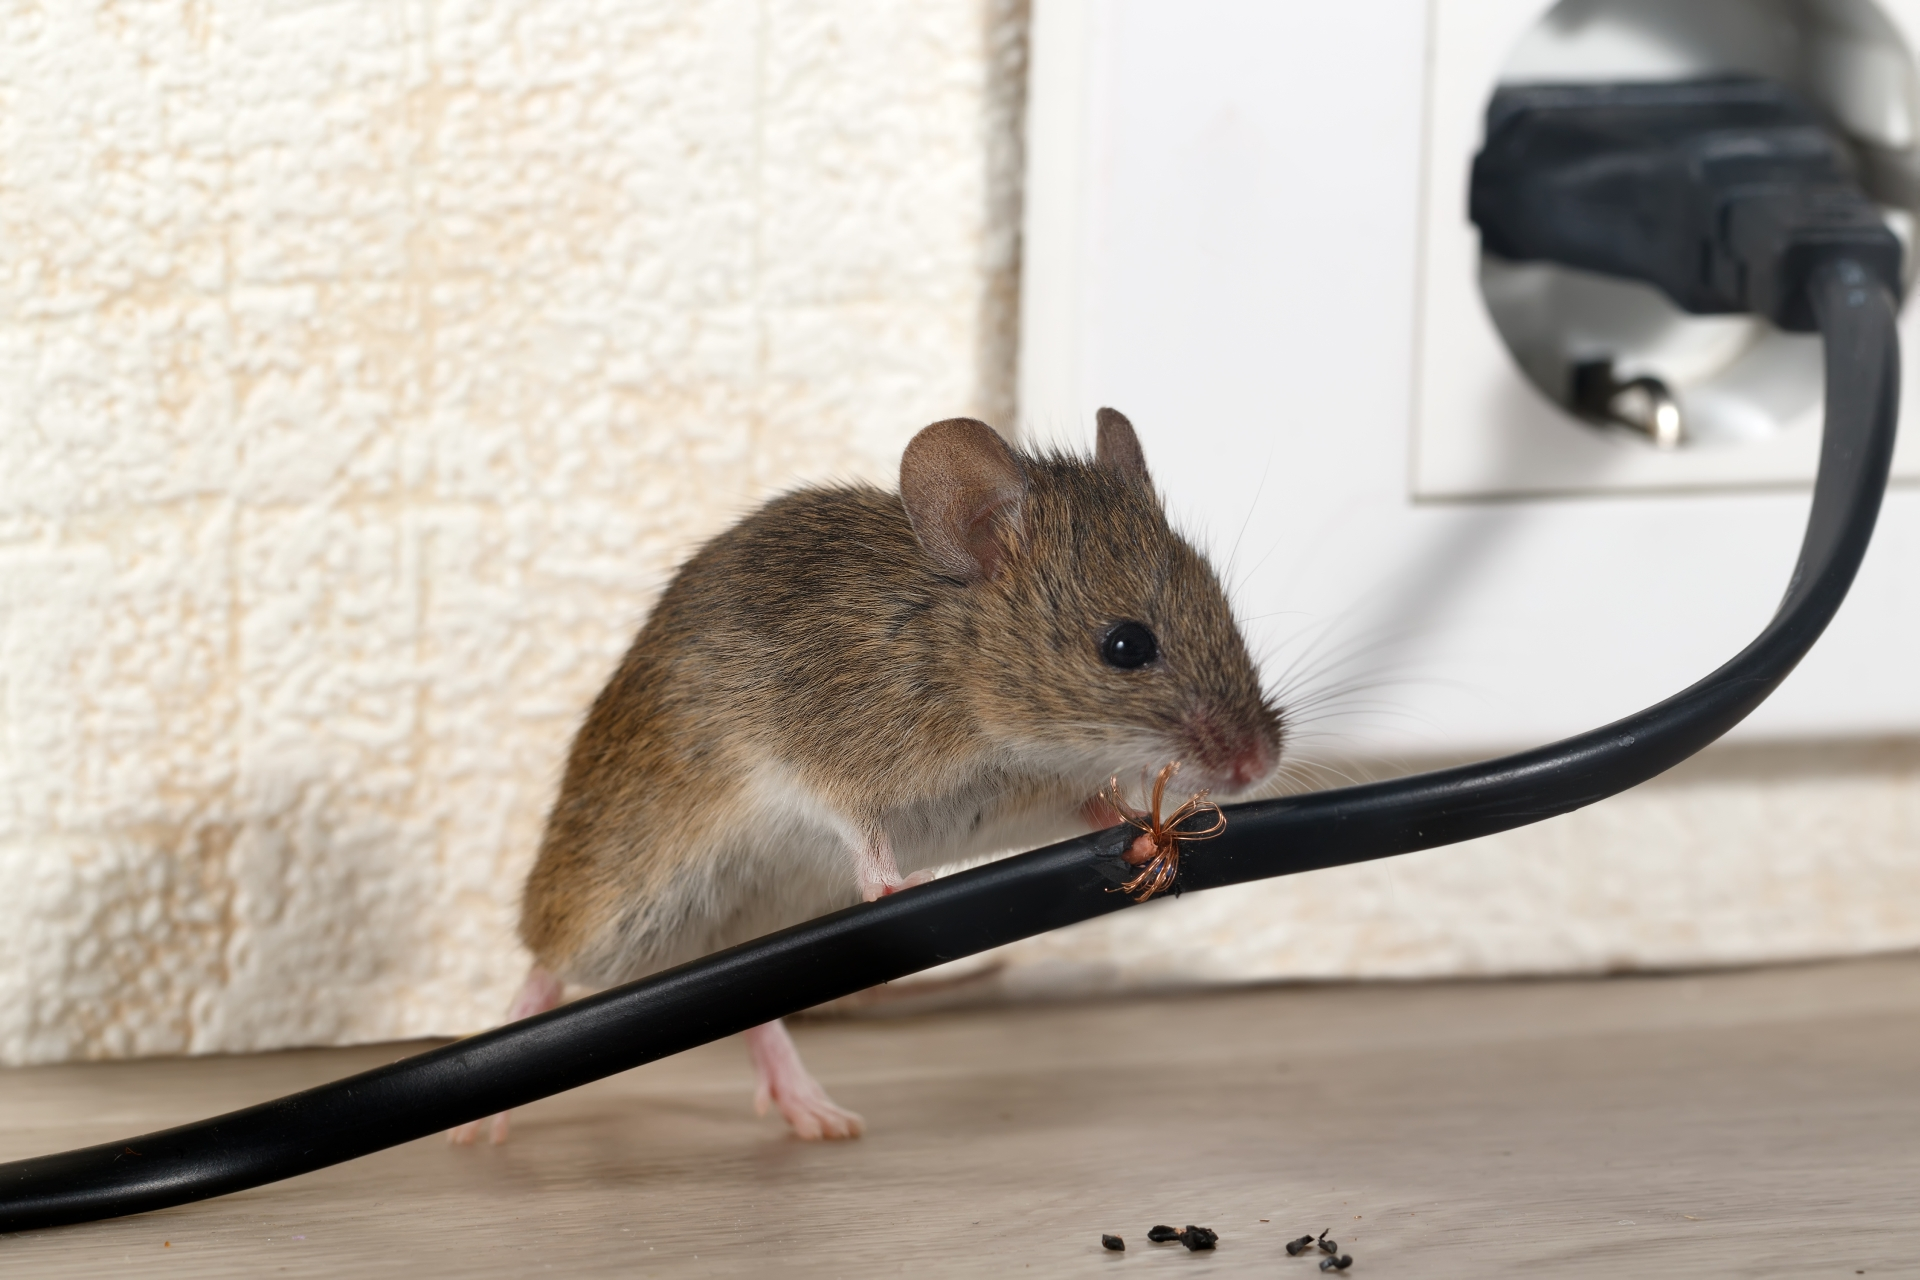 Mice Infestation, Pest Control in Chertsey, Ottershaw, Longcross, KT16. Call Now 020 8166 9746